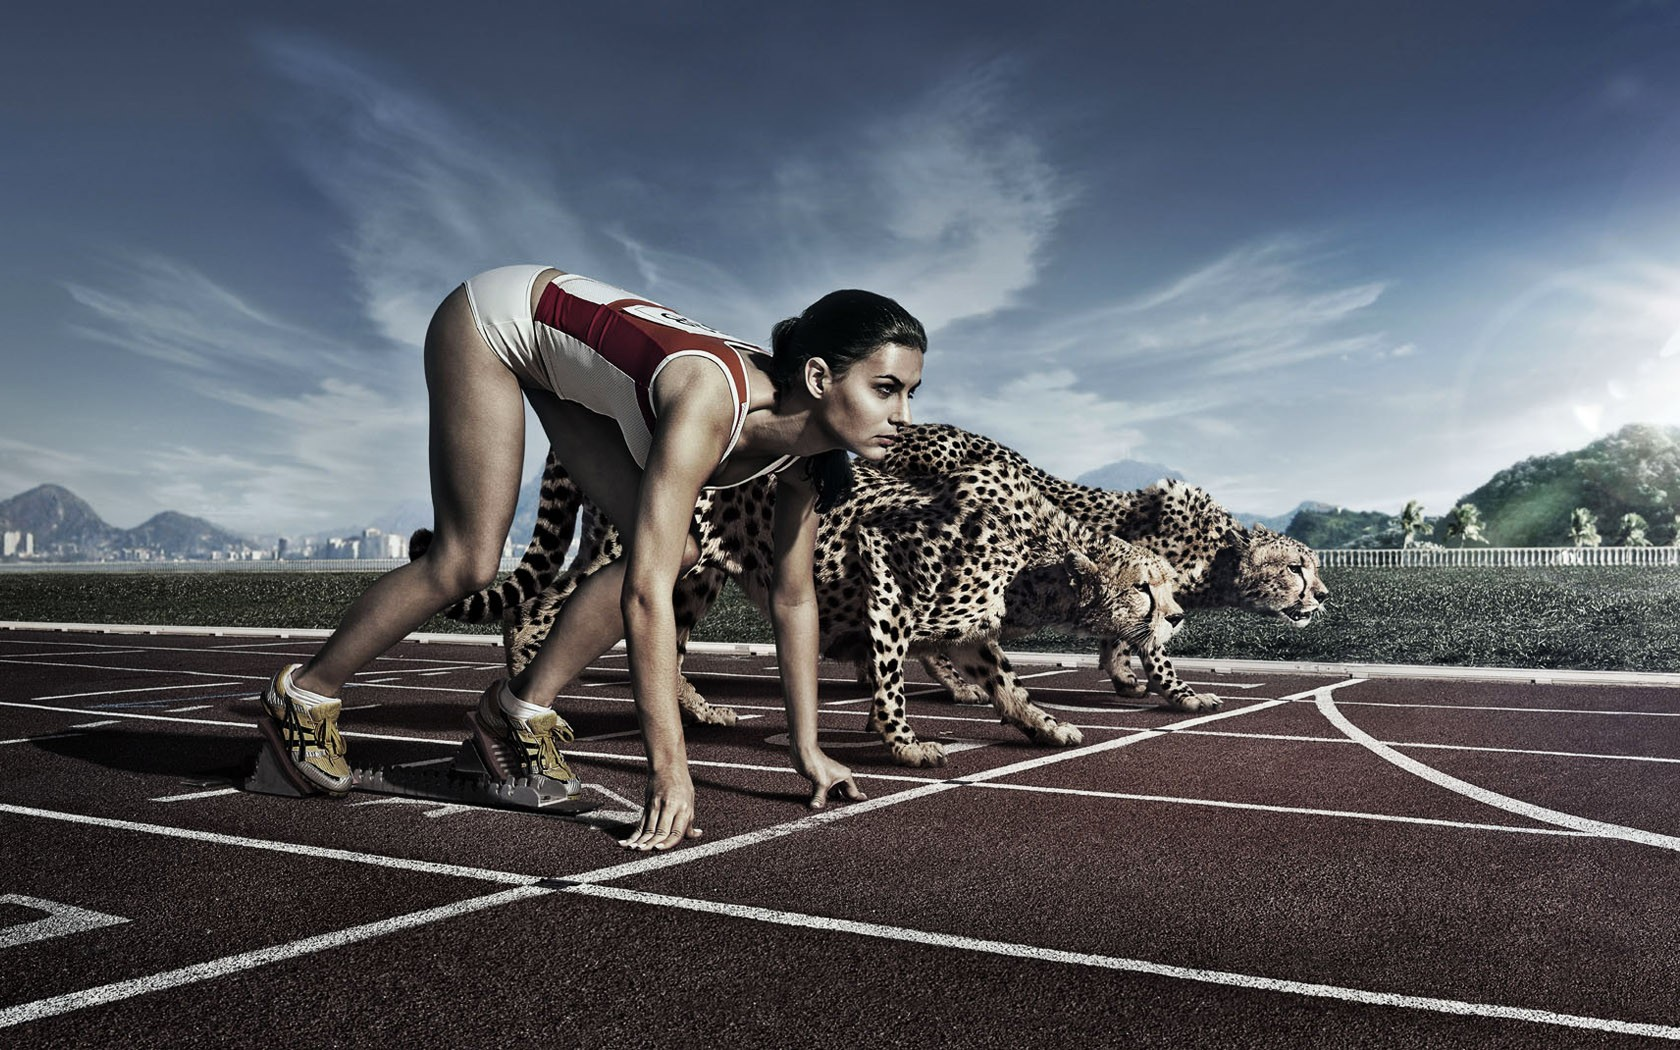 sport-nike-panther-girl-run-aligned-athletics-hd-wallpaper_1419341829